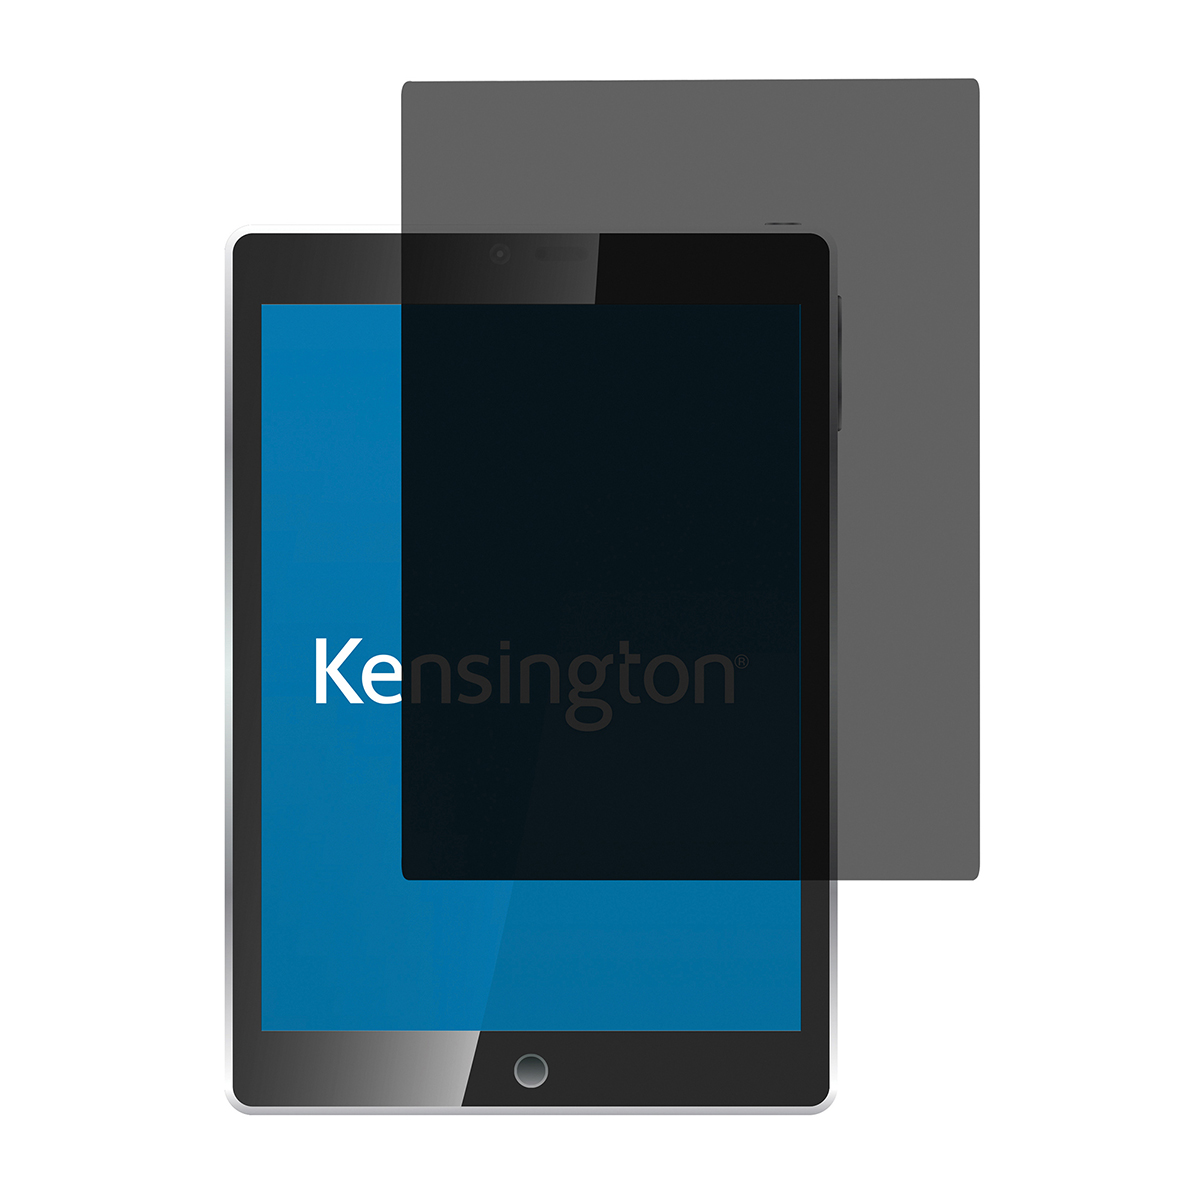 Kensington 626403 Privacy Filter 2 Way Removable for iPad Pro 12.9 Inch 2017